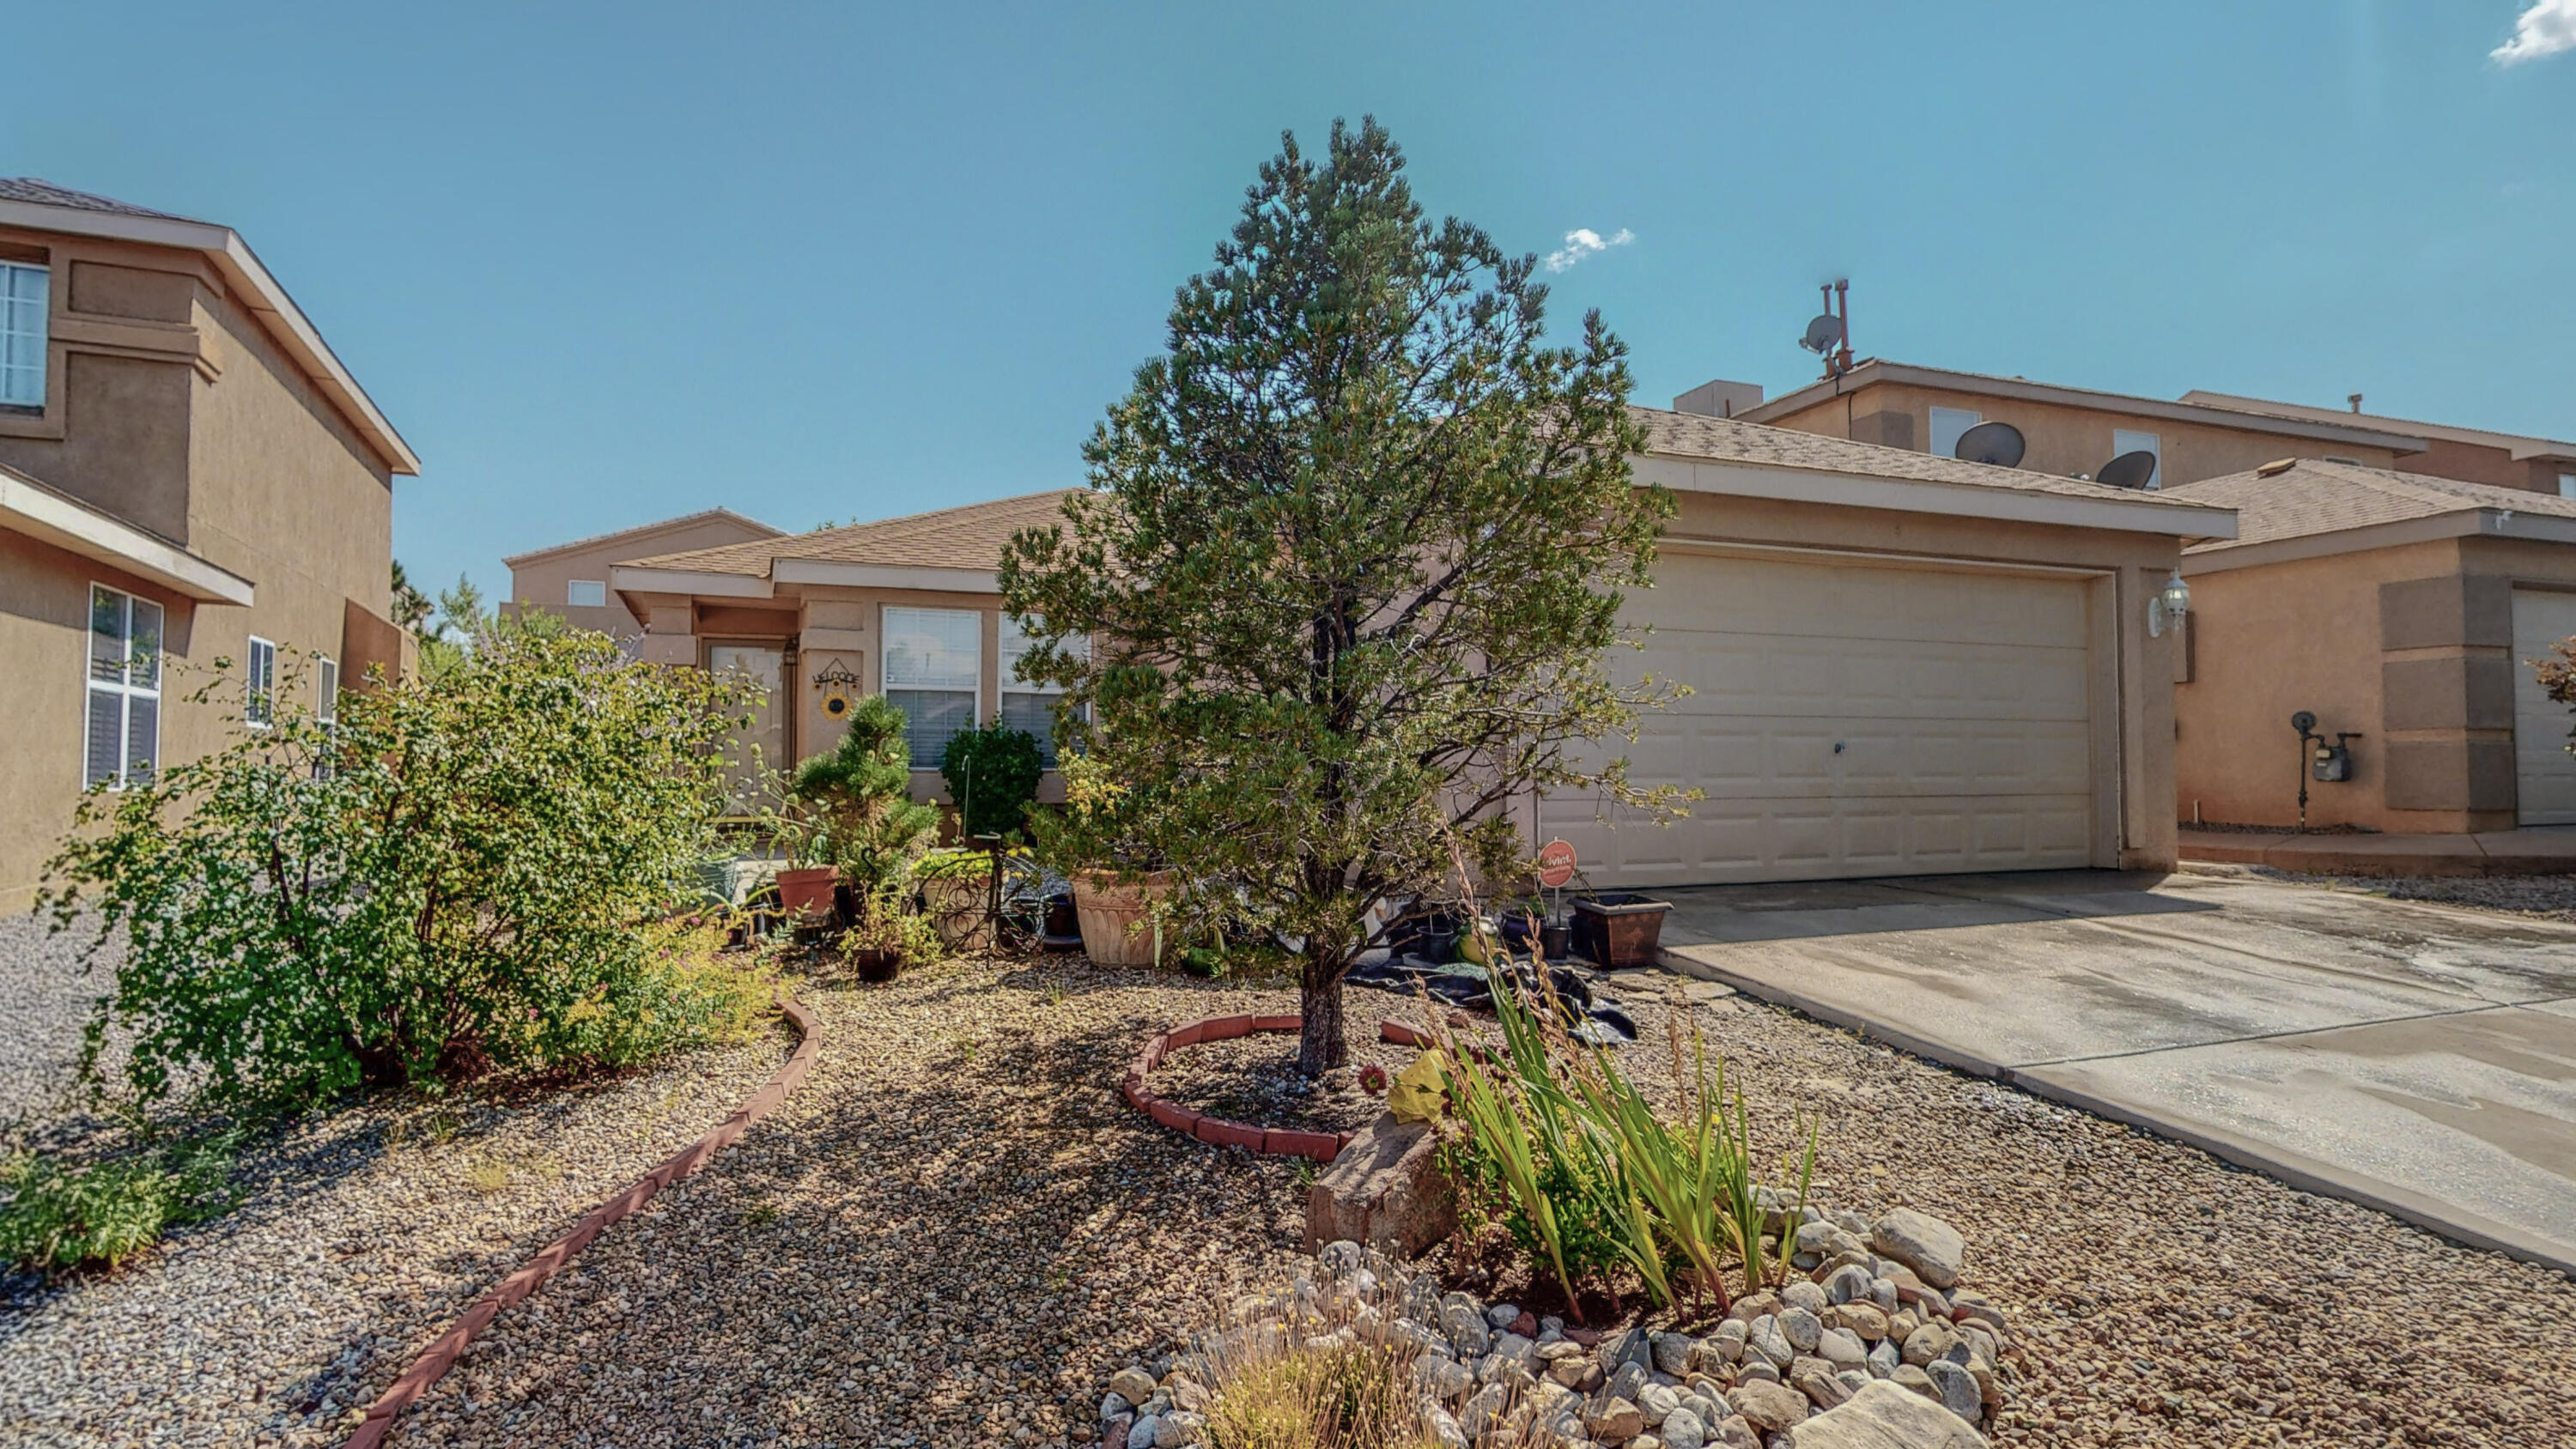 Price improvement!! Come see this lovely four bedroom home in Ventana Ranch.  One story with a greatroom leading into a large kitchen.  You will love all the tile work and the wall of cabinets in the remodeled kitchen. You won't believe the size of the masterbedroom!  Both bathrooms has been remodeled too! No carpet here!  Cute backyard and patio. HOA for common area.